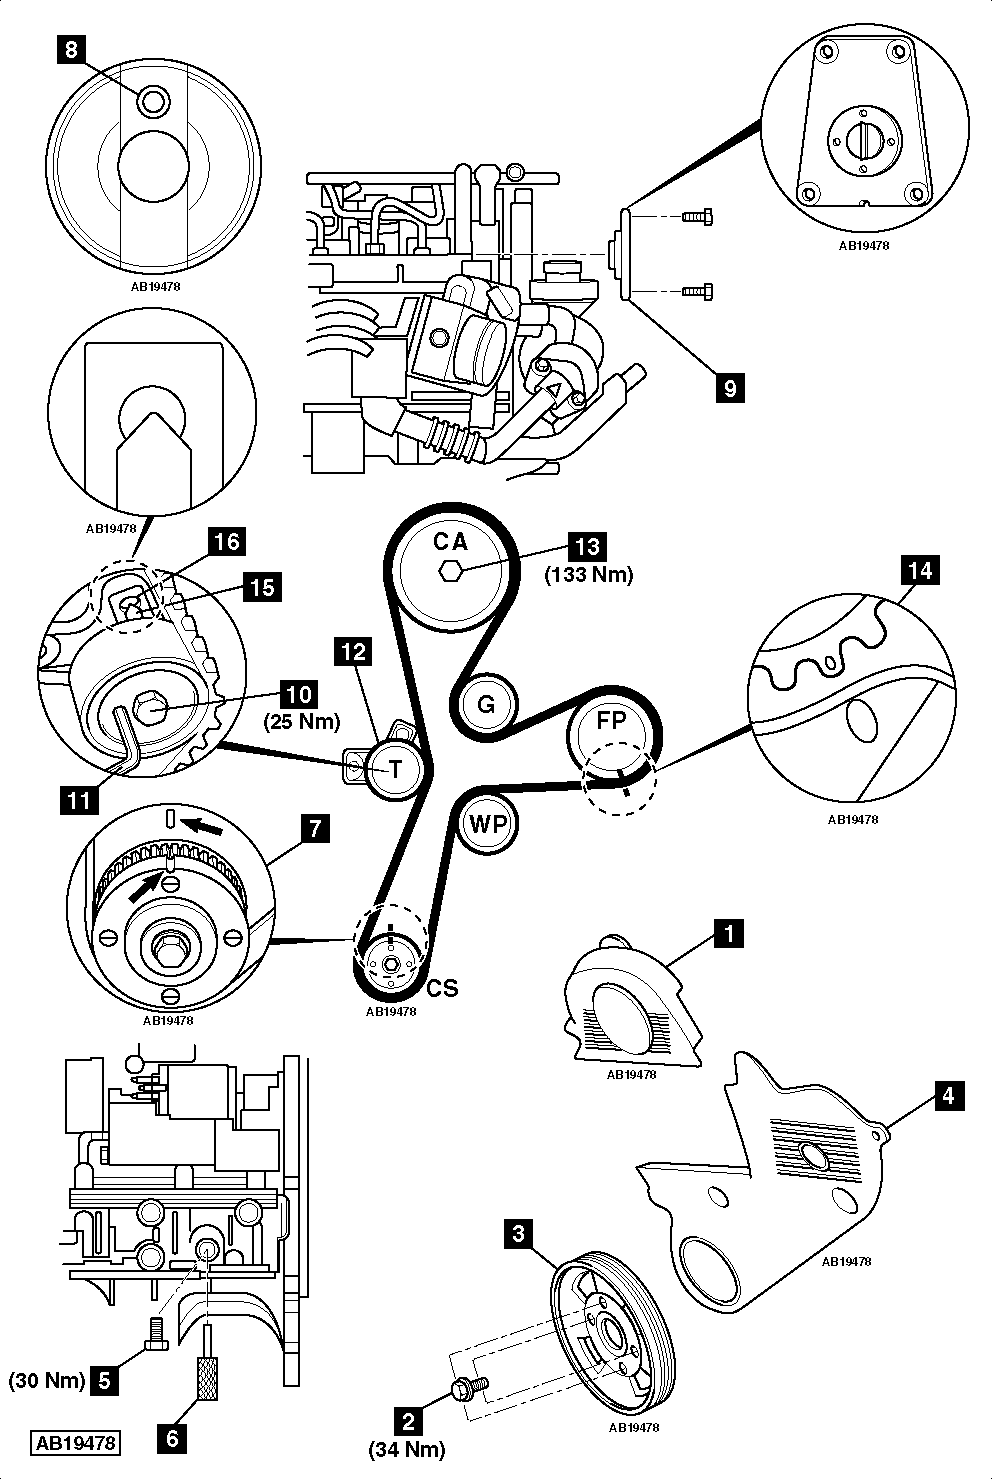 Chevrolet Sonic Parts Diagrams on chevy aveo timing belt diagram